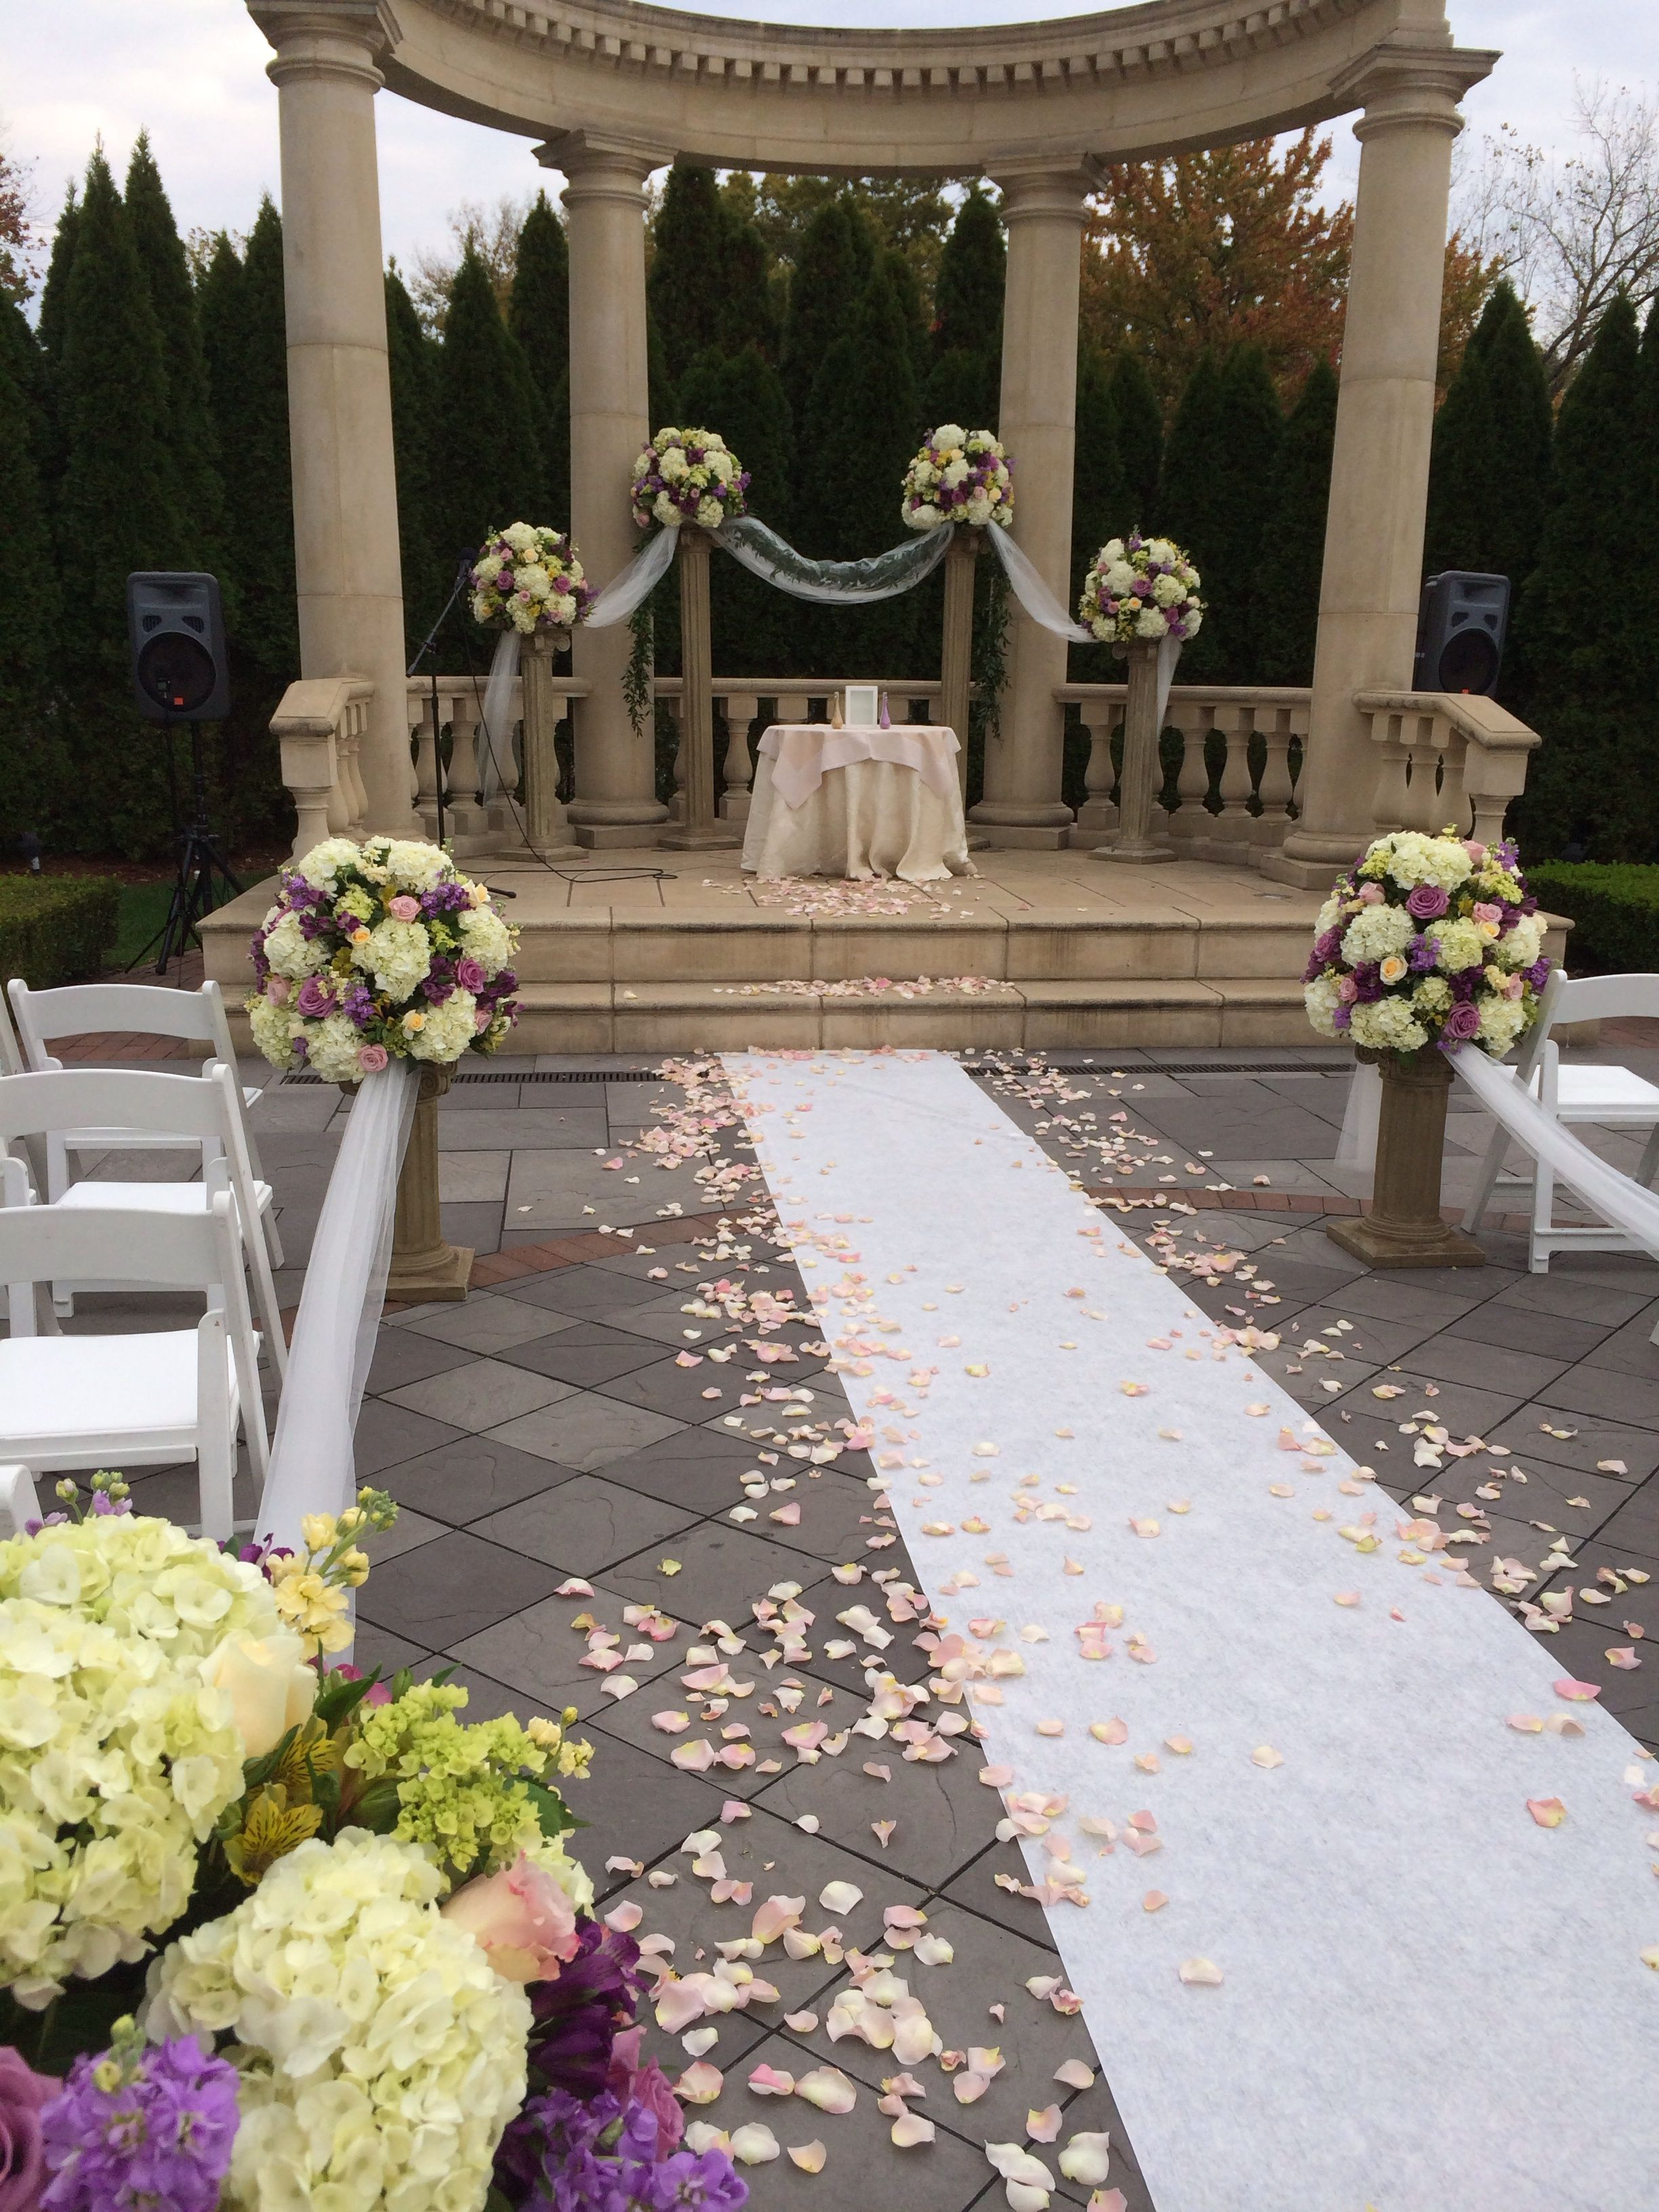 Outdoor ceremony rockleigh country club amaryllis decorators outdoor ceremony rockleigh country club amaryllis decorators northvale new jersey junglespirit Images